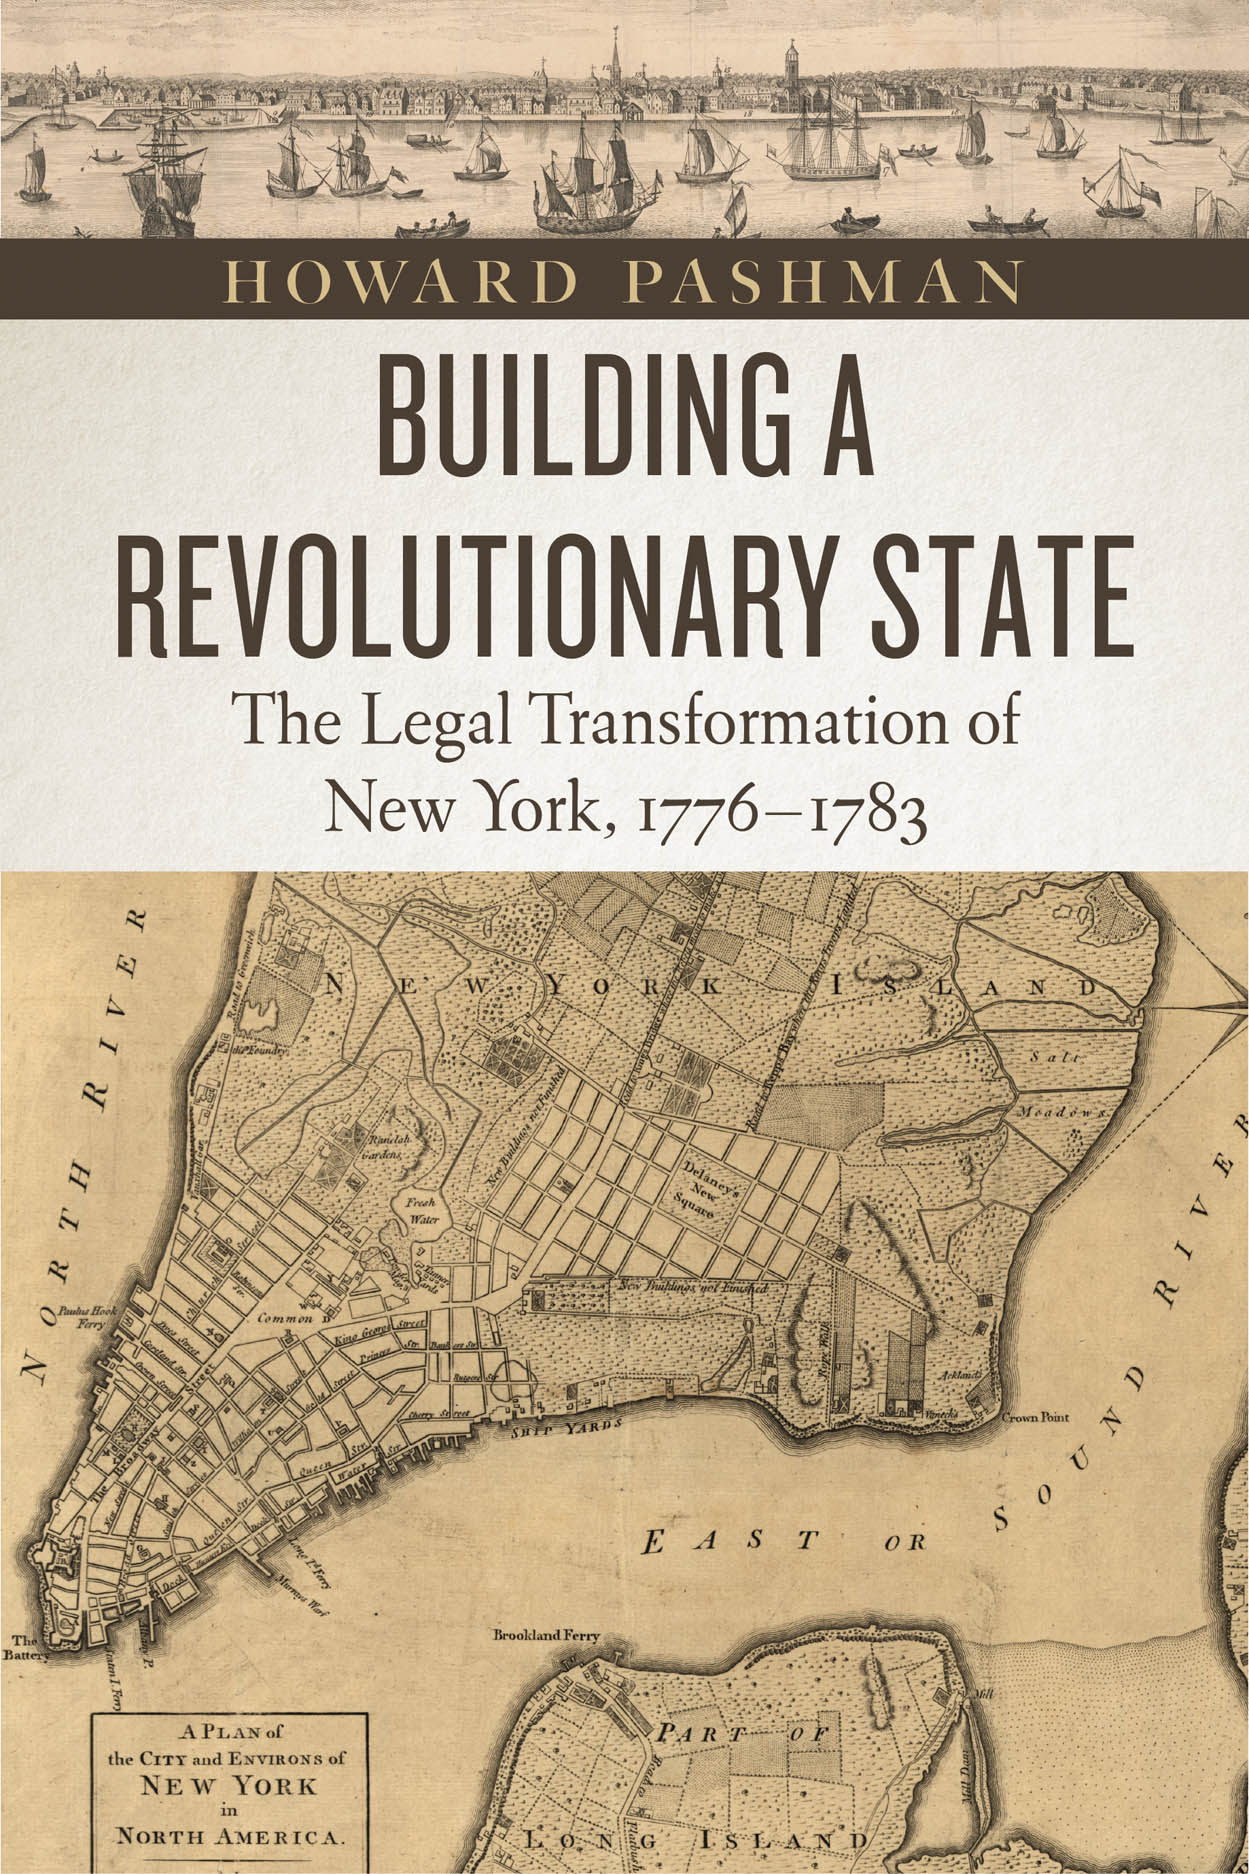 Building a Revolutionary State: The Legal Transformation of New York, 1776-1783